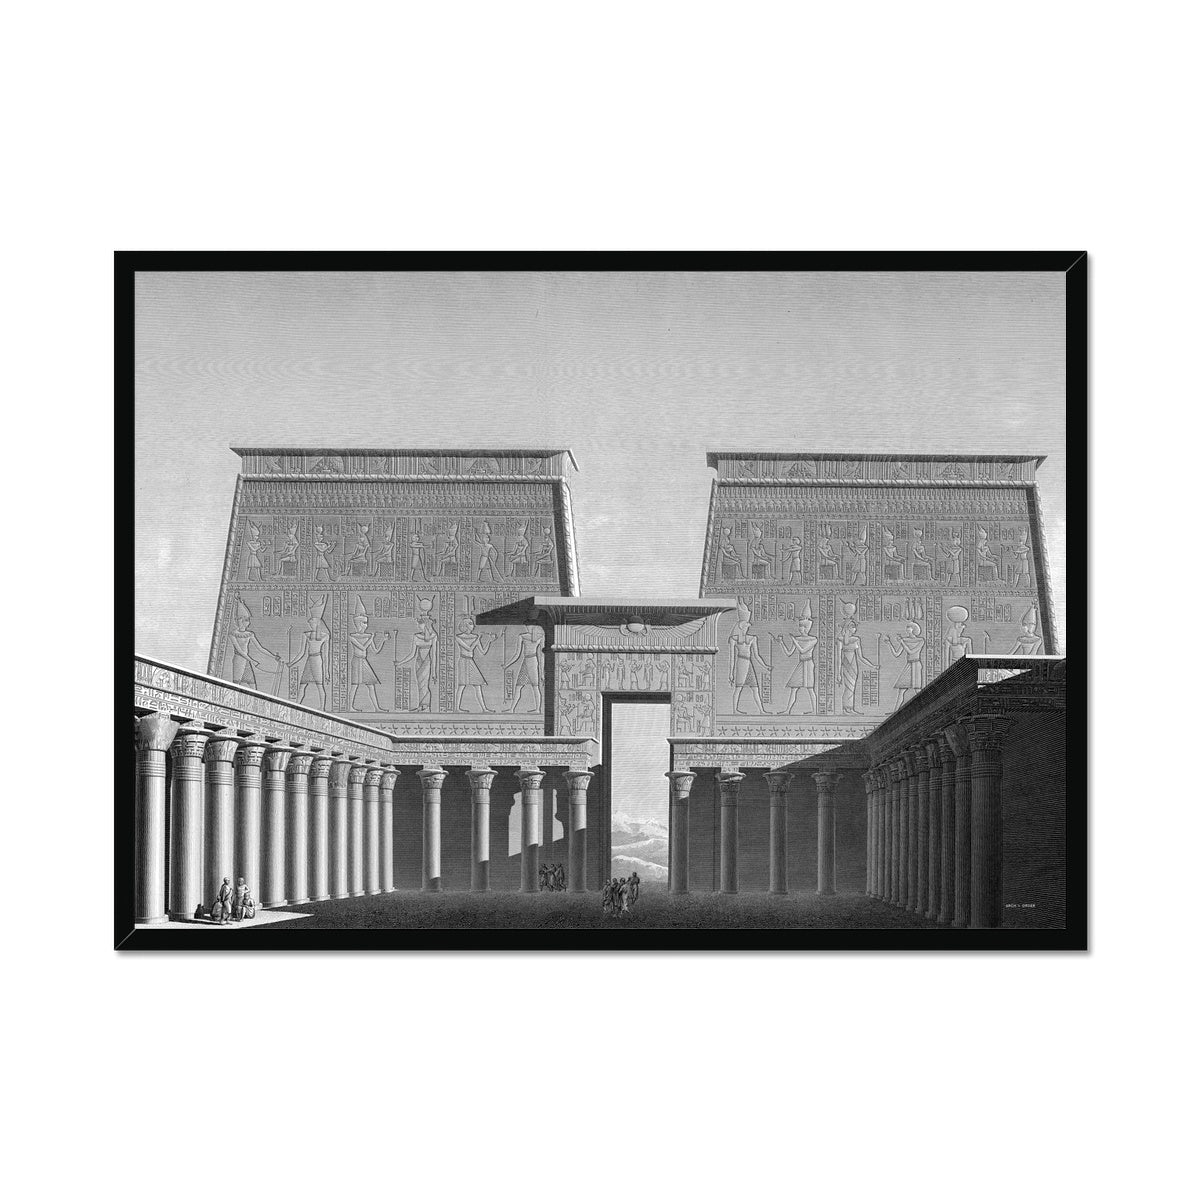 Temple of Horus Courtyard - Edfu Egypt -  Framed Print